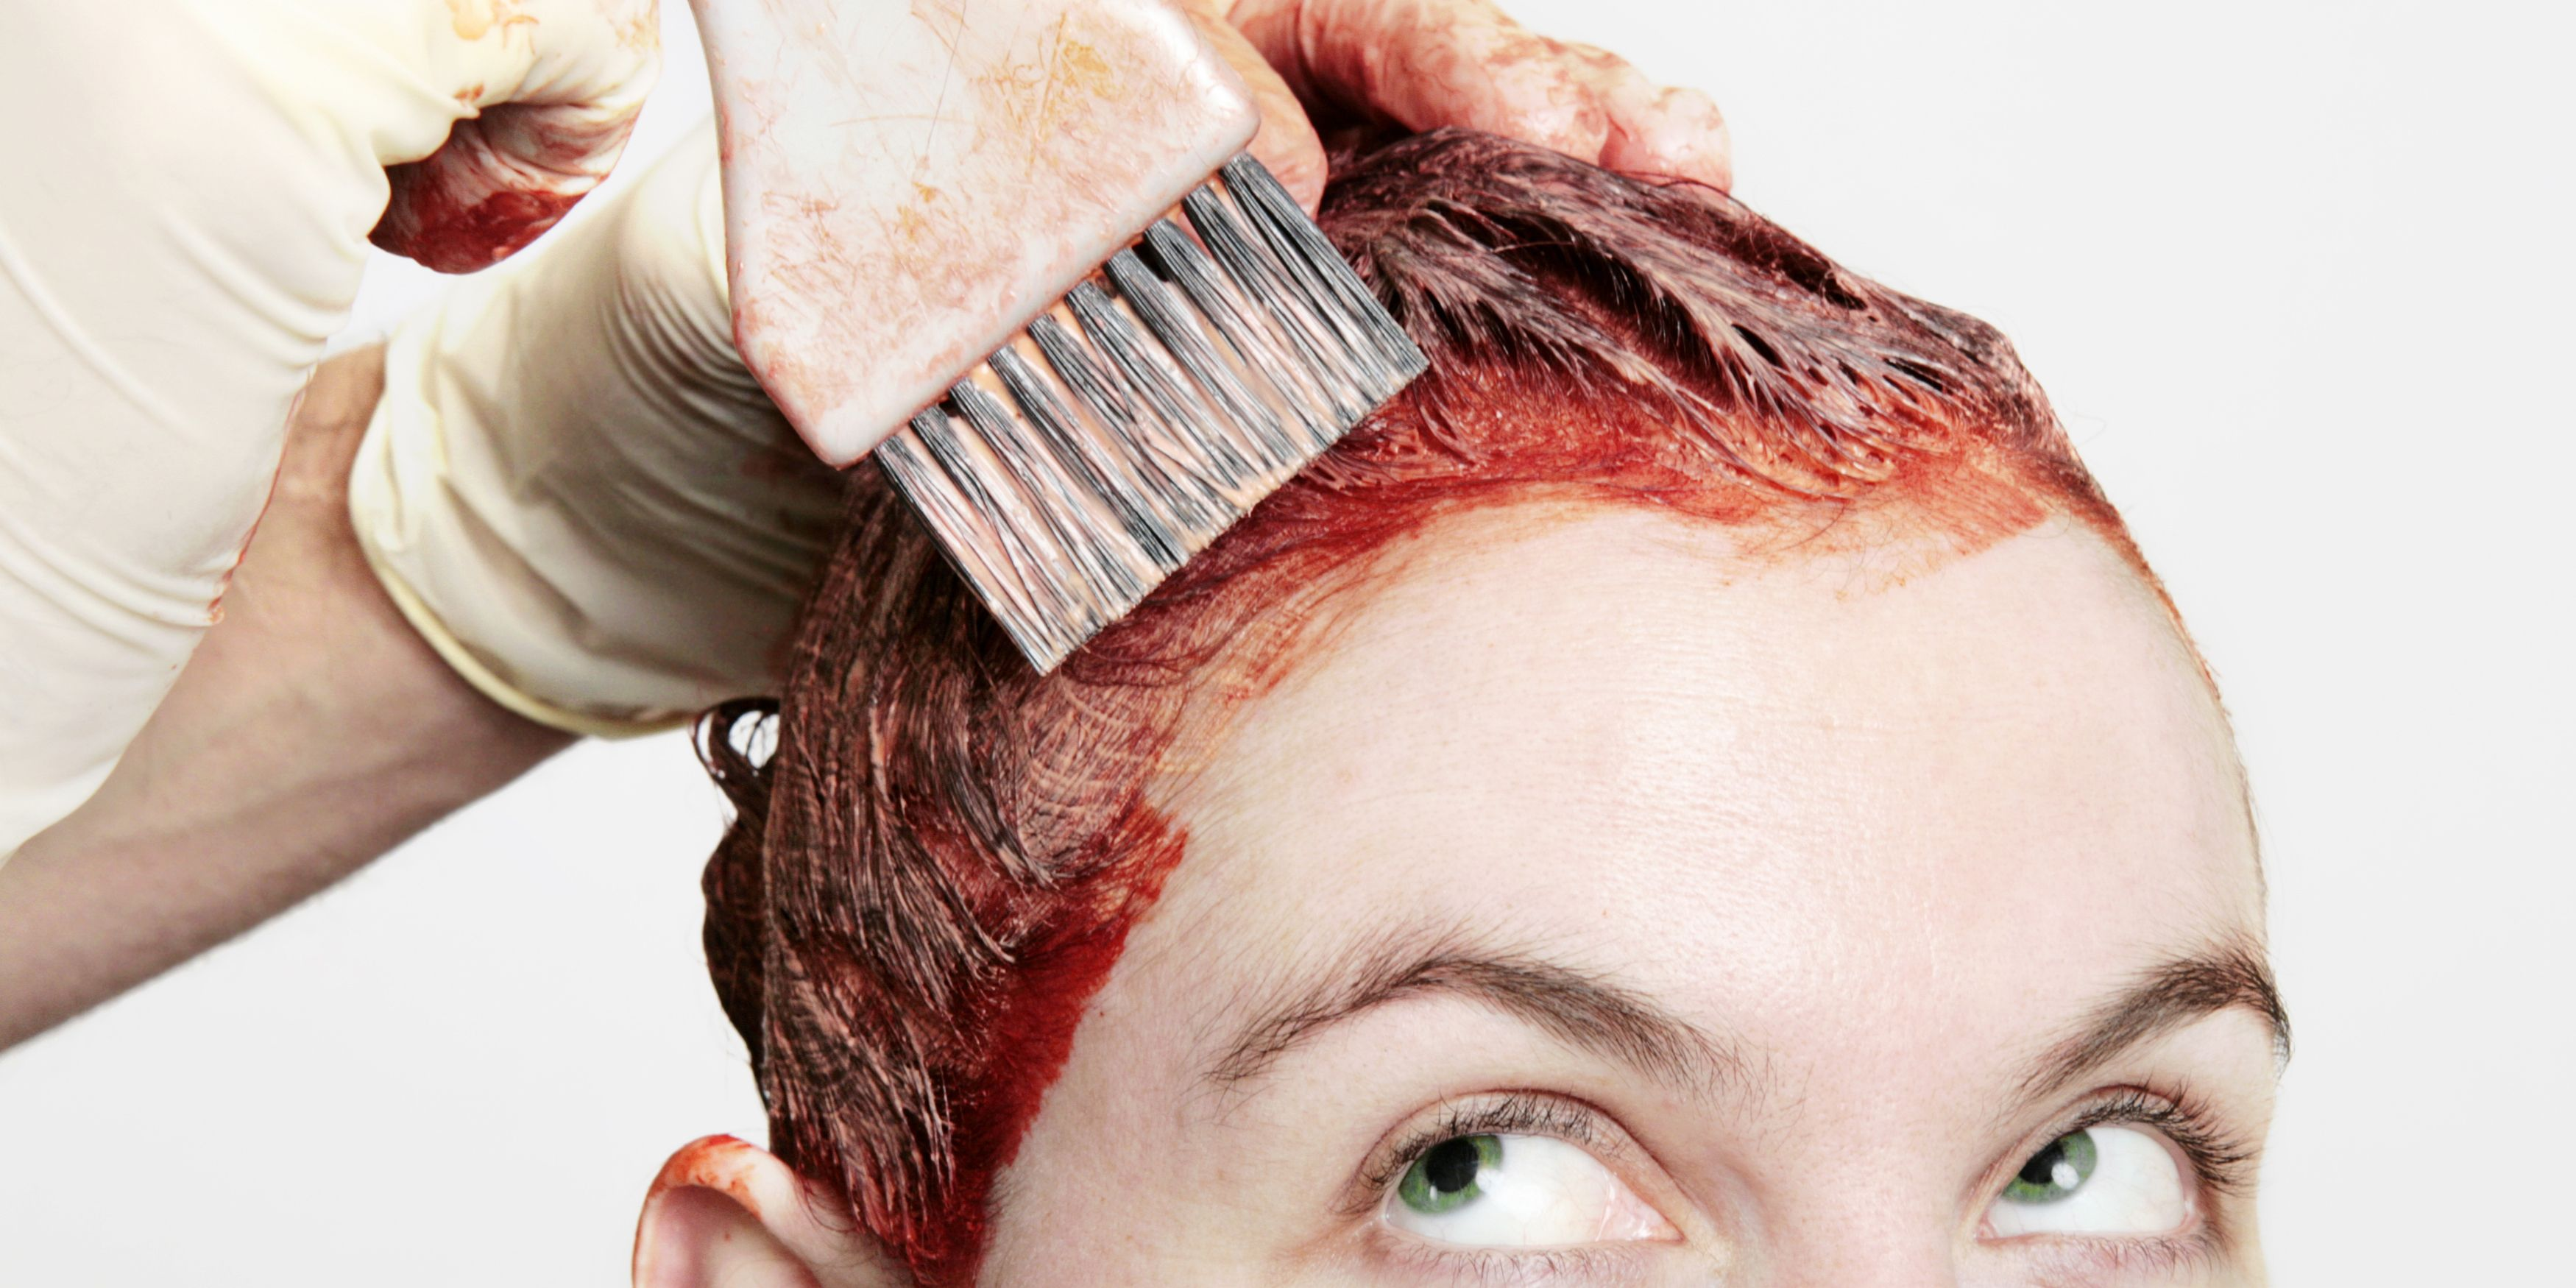 How To Get Hair Dye Off Skin Remove Hair Dye From Your Skin